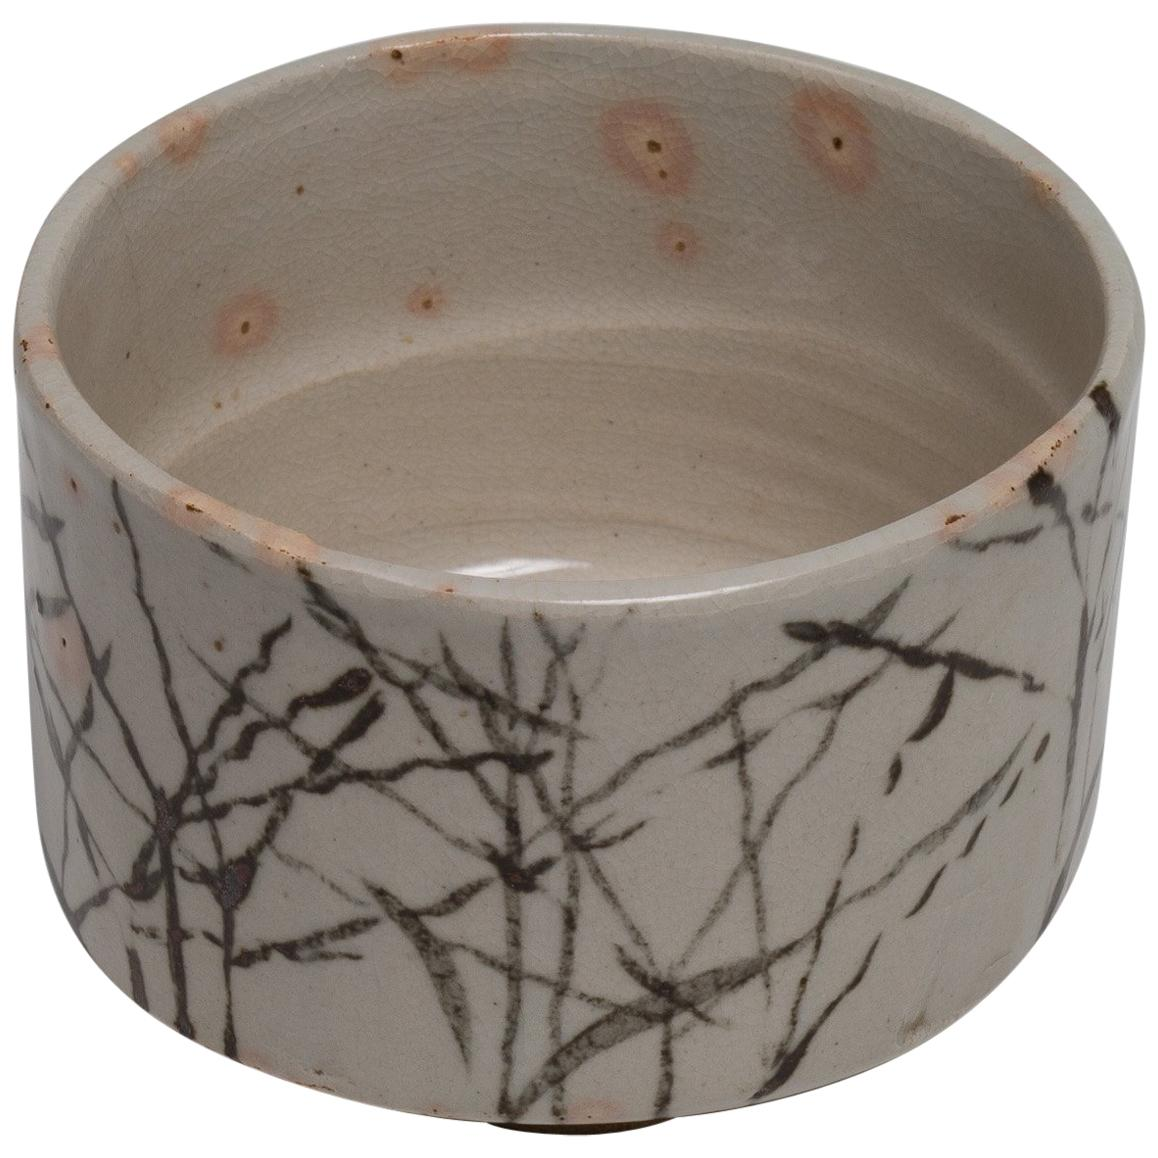 ceramic tea bowl chawan